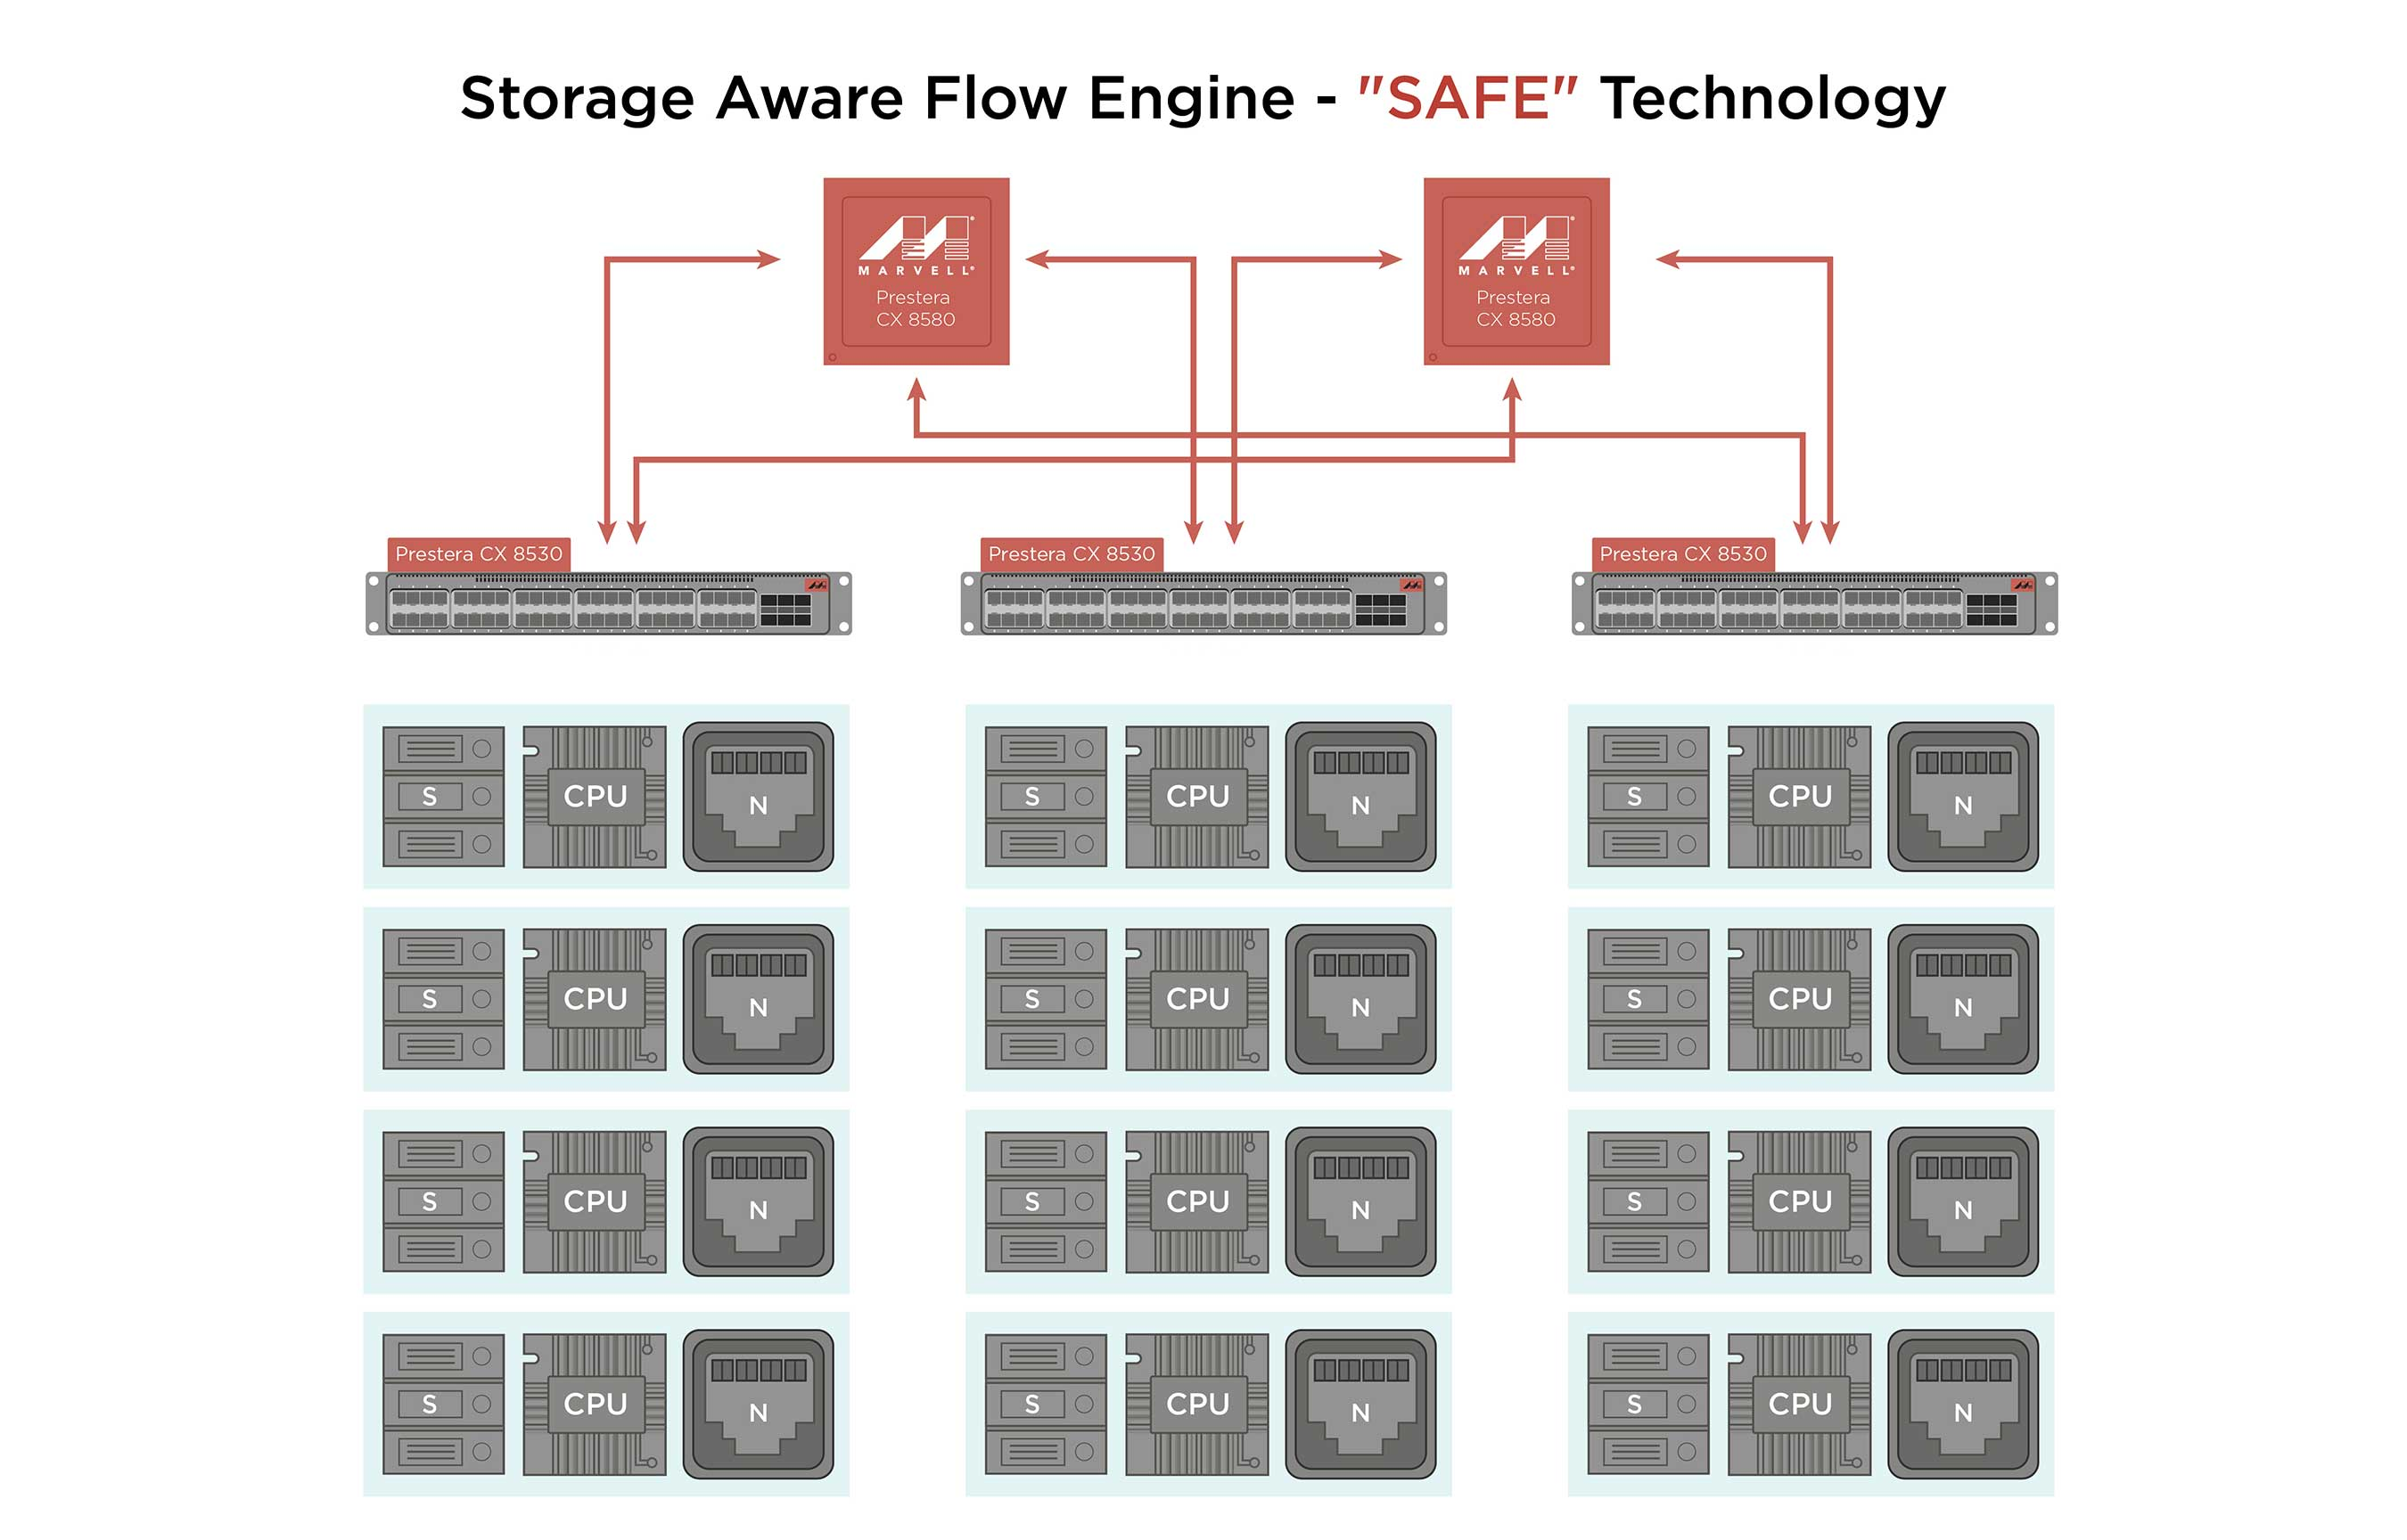 Storage Aware Flow Engine (SAFE) technology in the Marvell Prestera CX 8500 family facilitates virtual storage orchestration by providing greater insight into network flows with per flow visibility, advanced telemetry and comprehensive diagnostics that identify and resolve network congestion.